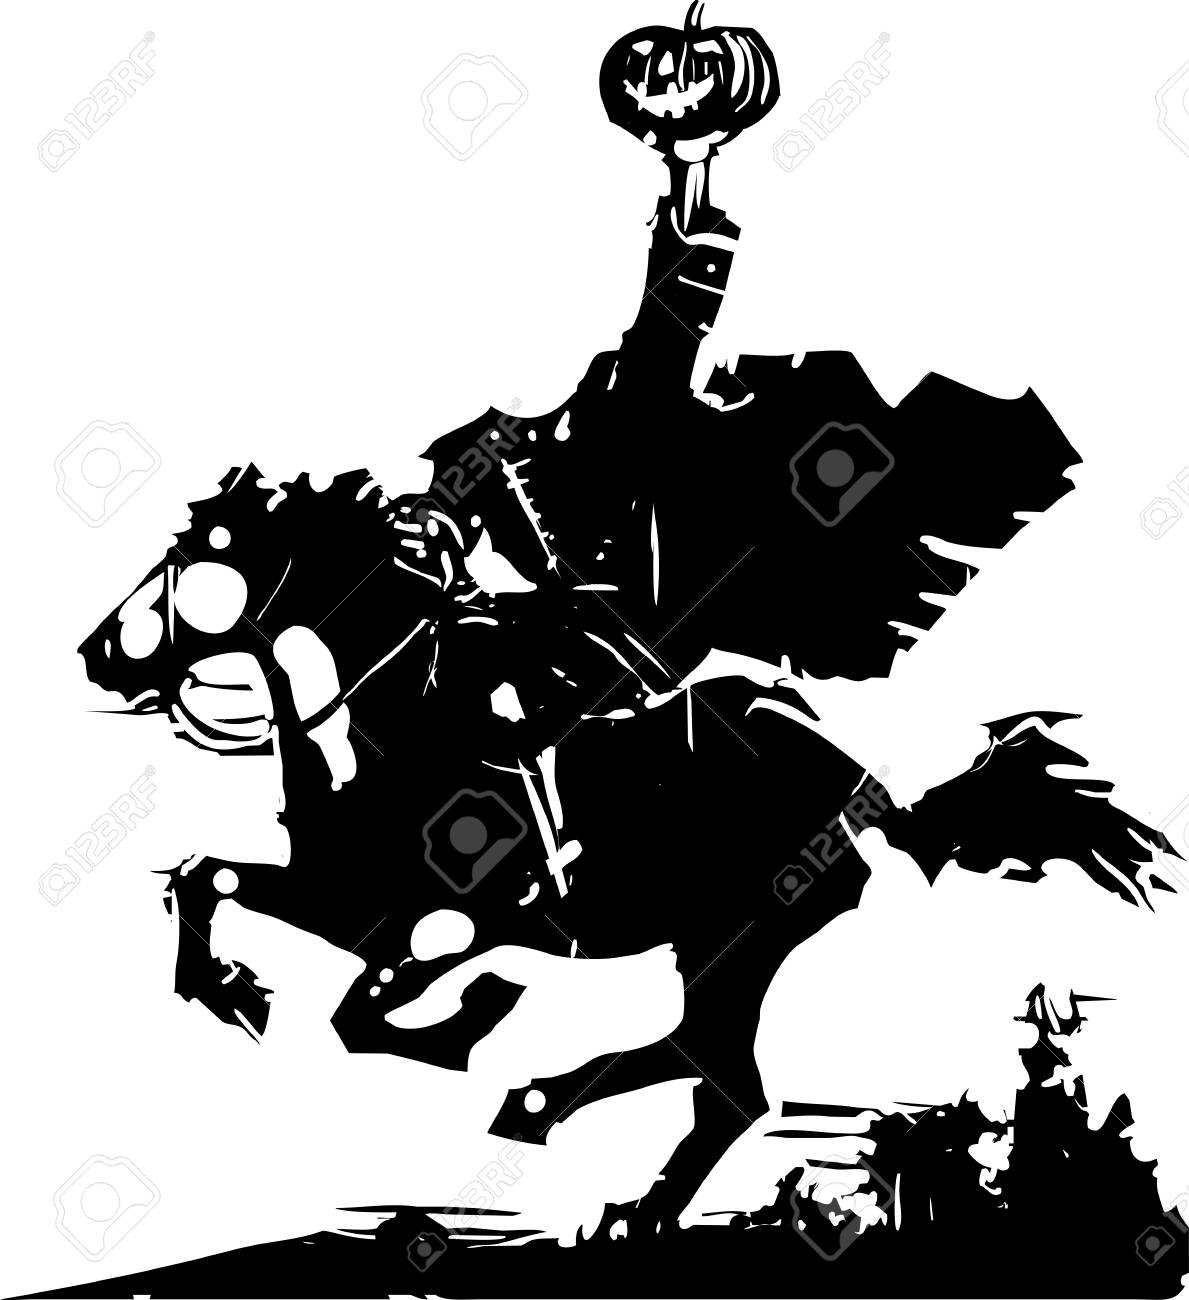 Woodcut style expressionist image of the Headless horseman ghost...